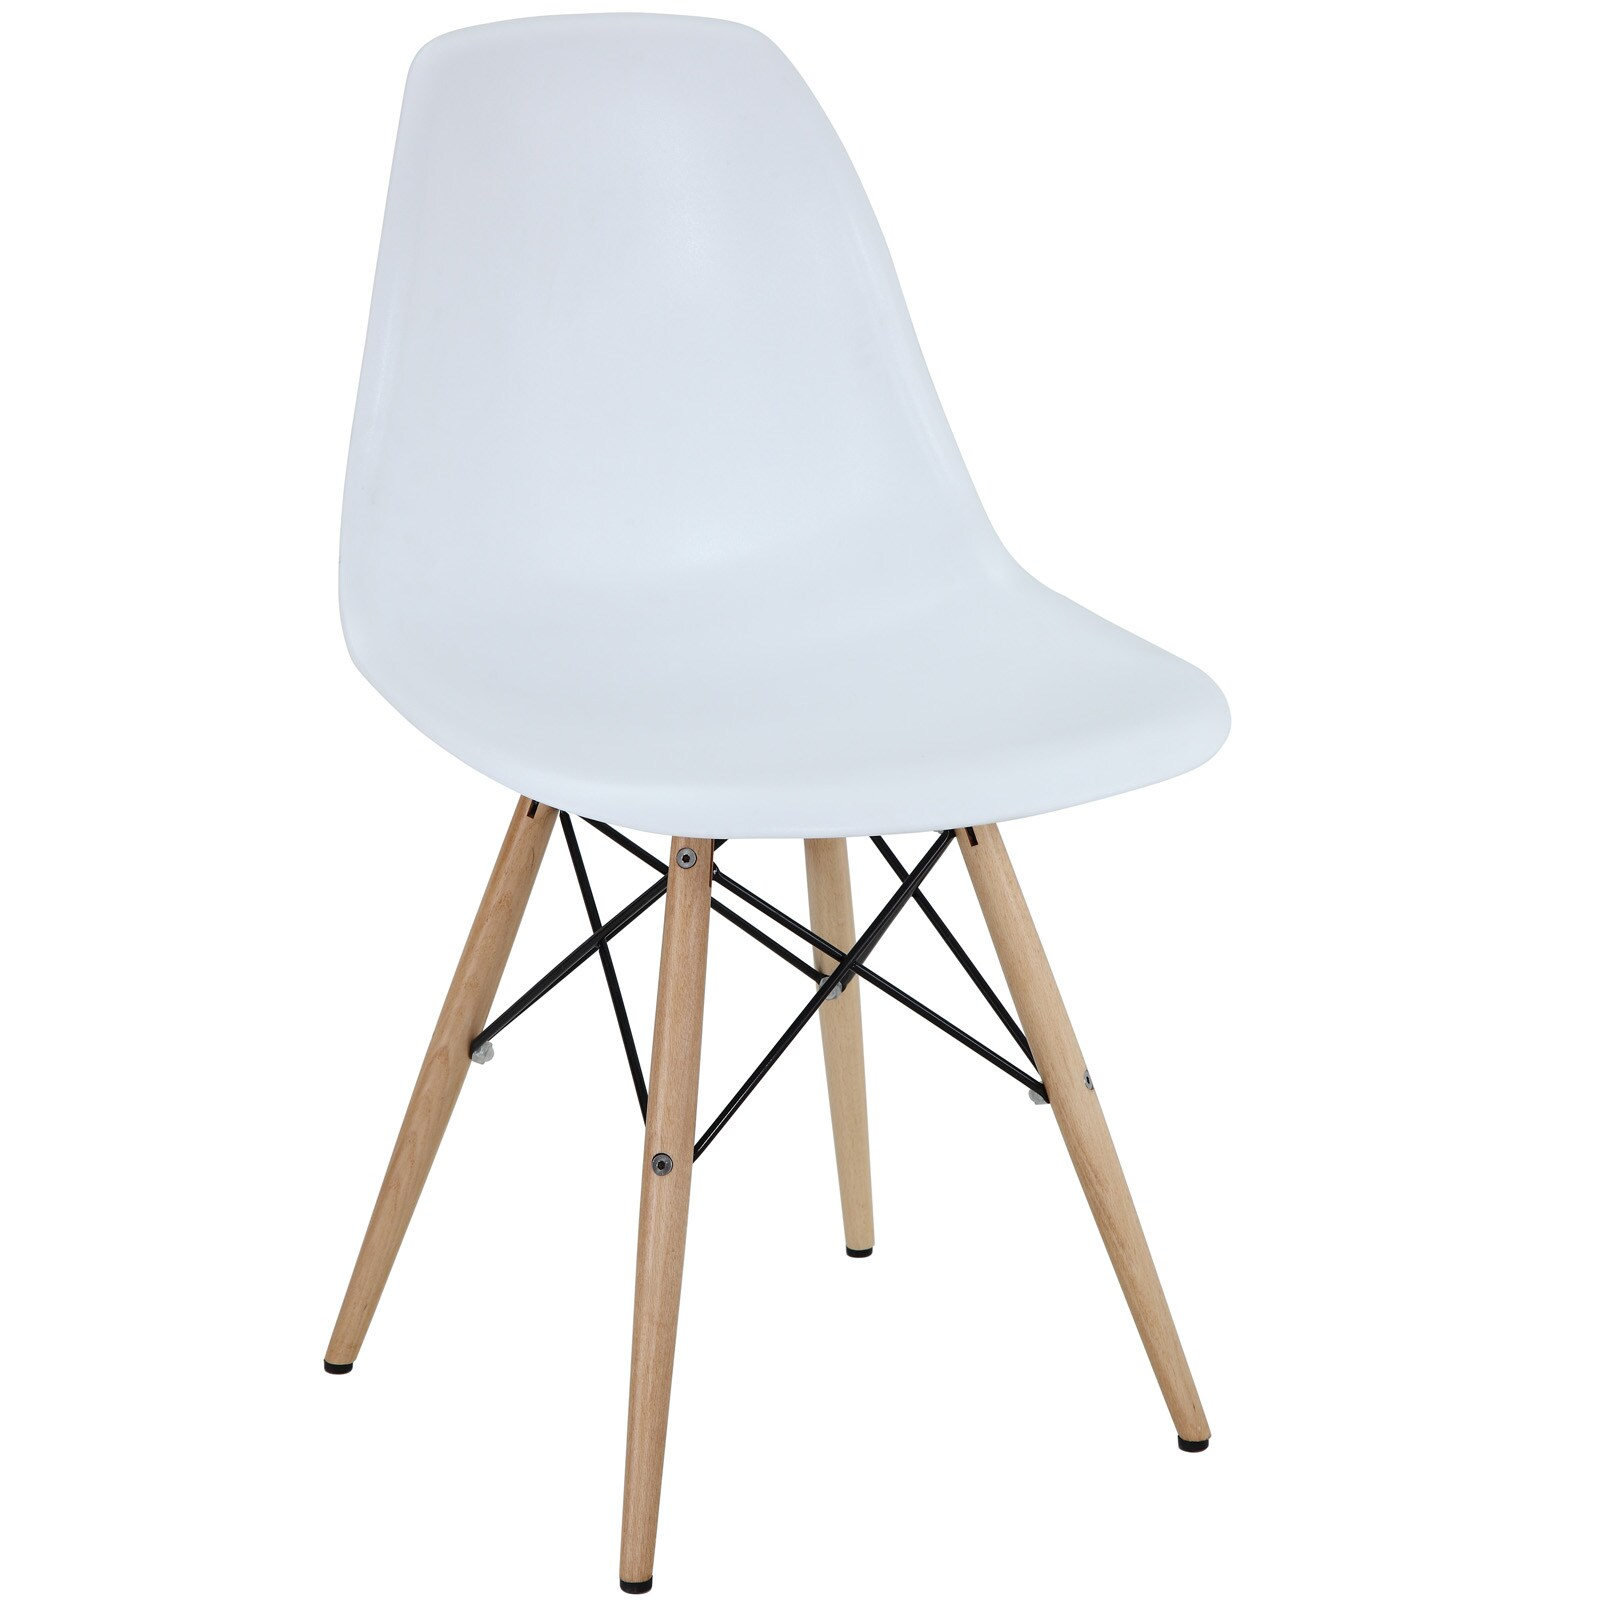 Shop White Plastic Dining Chair With Wooden Base   Free Shipping Today    Overstock.com   6673568